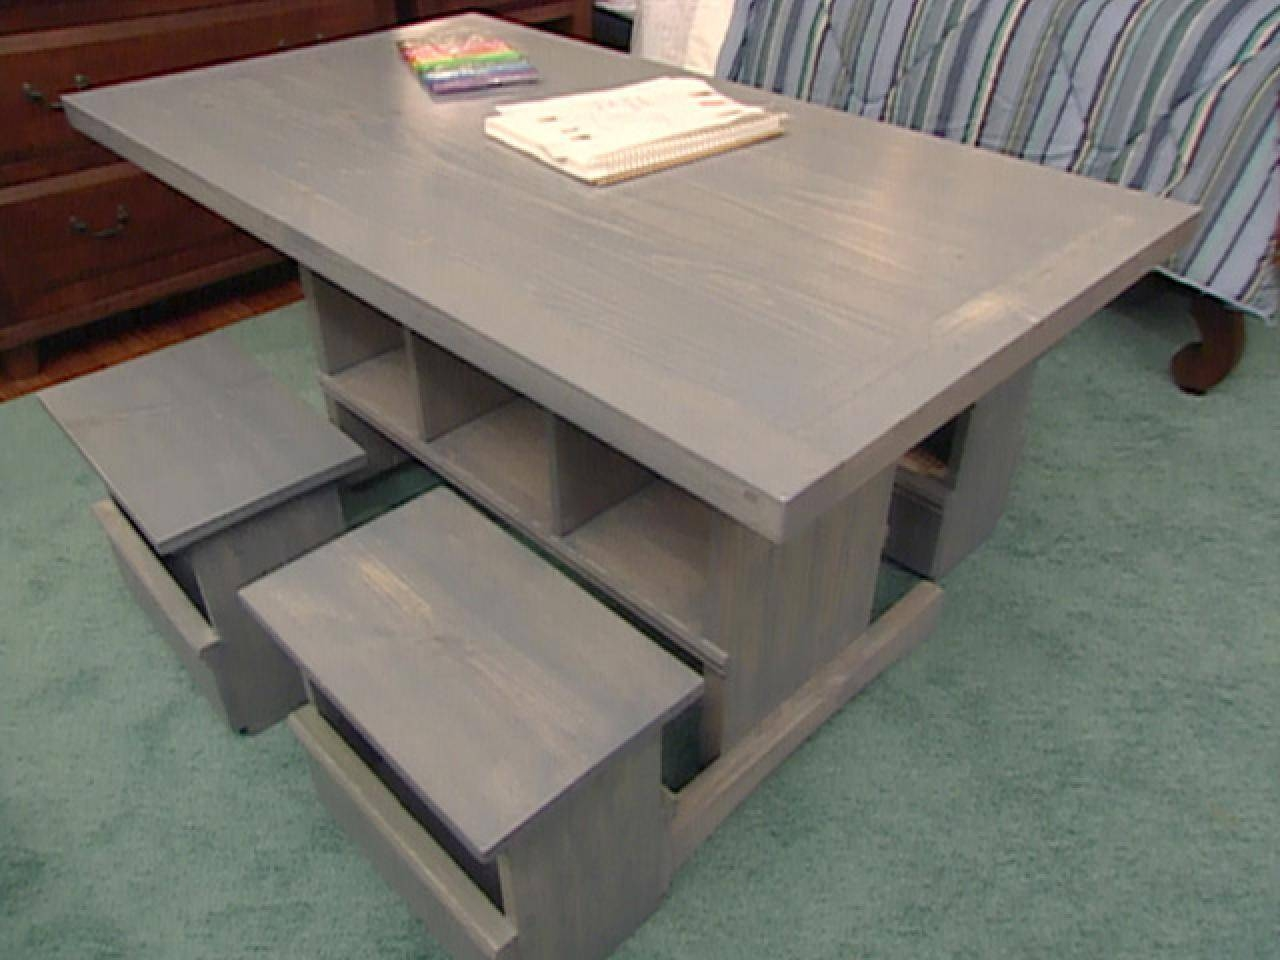 How To Build Child Sized Table And Stools | Hgtv With Regard To Kids Coffee Tables (View 13 of 30)